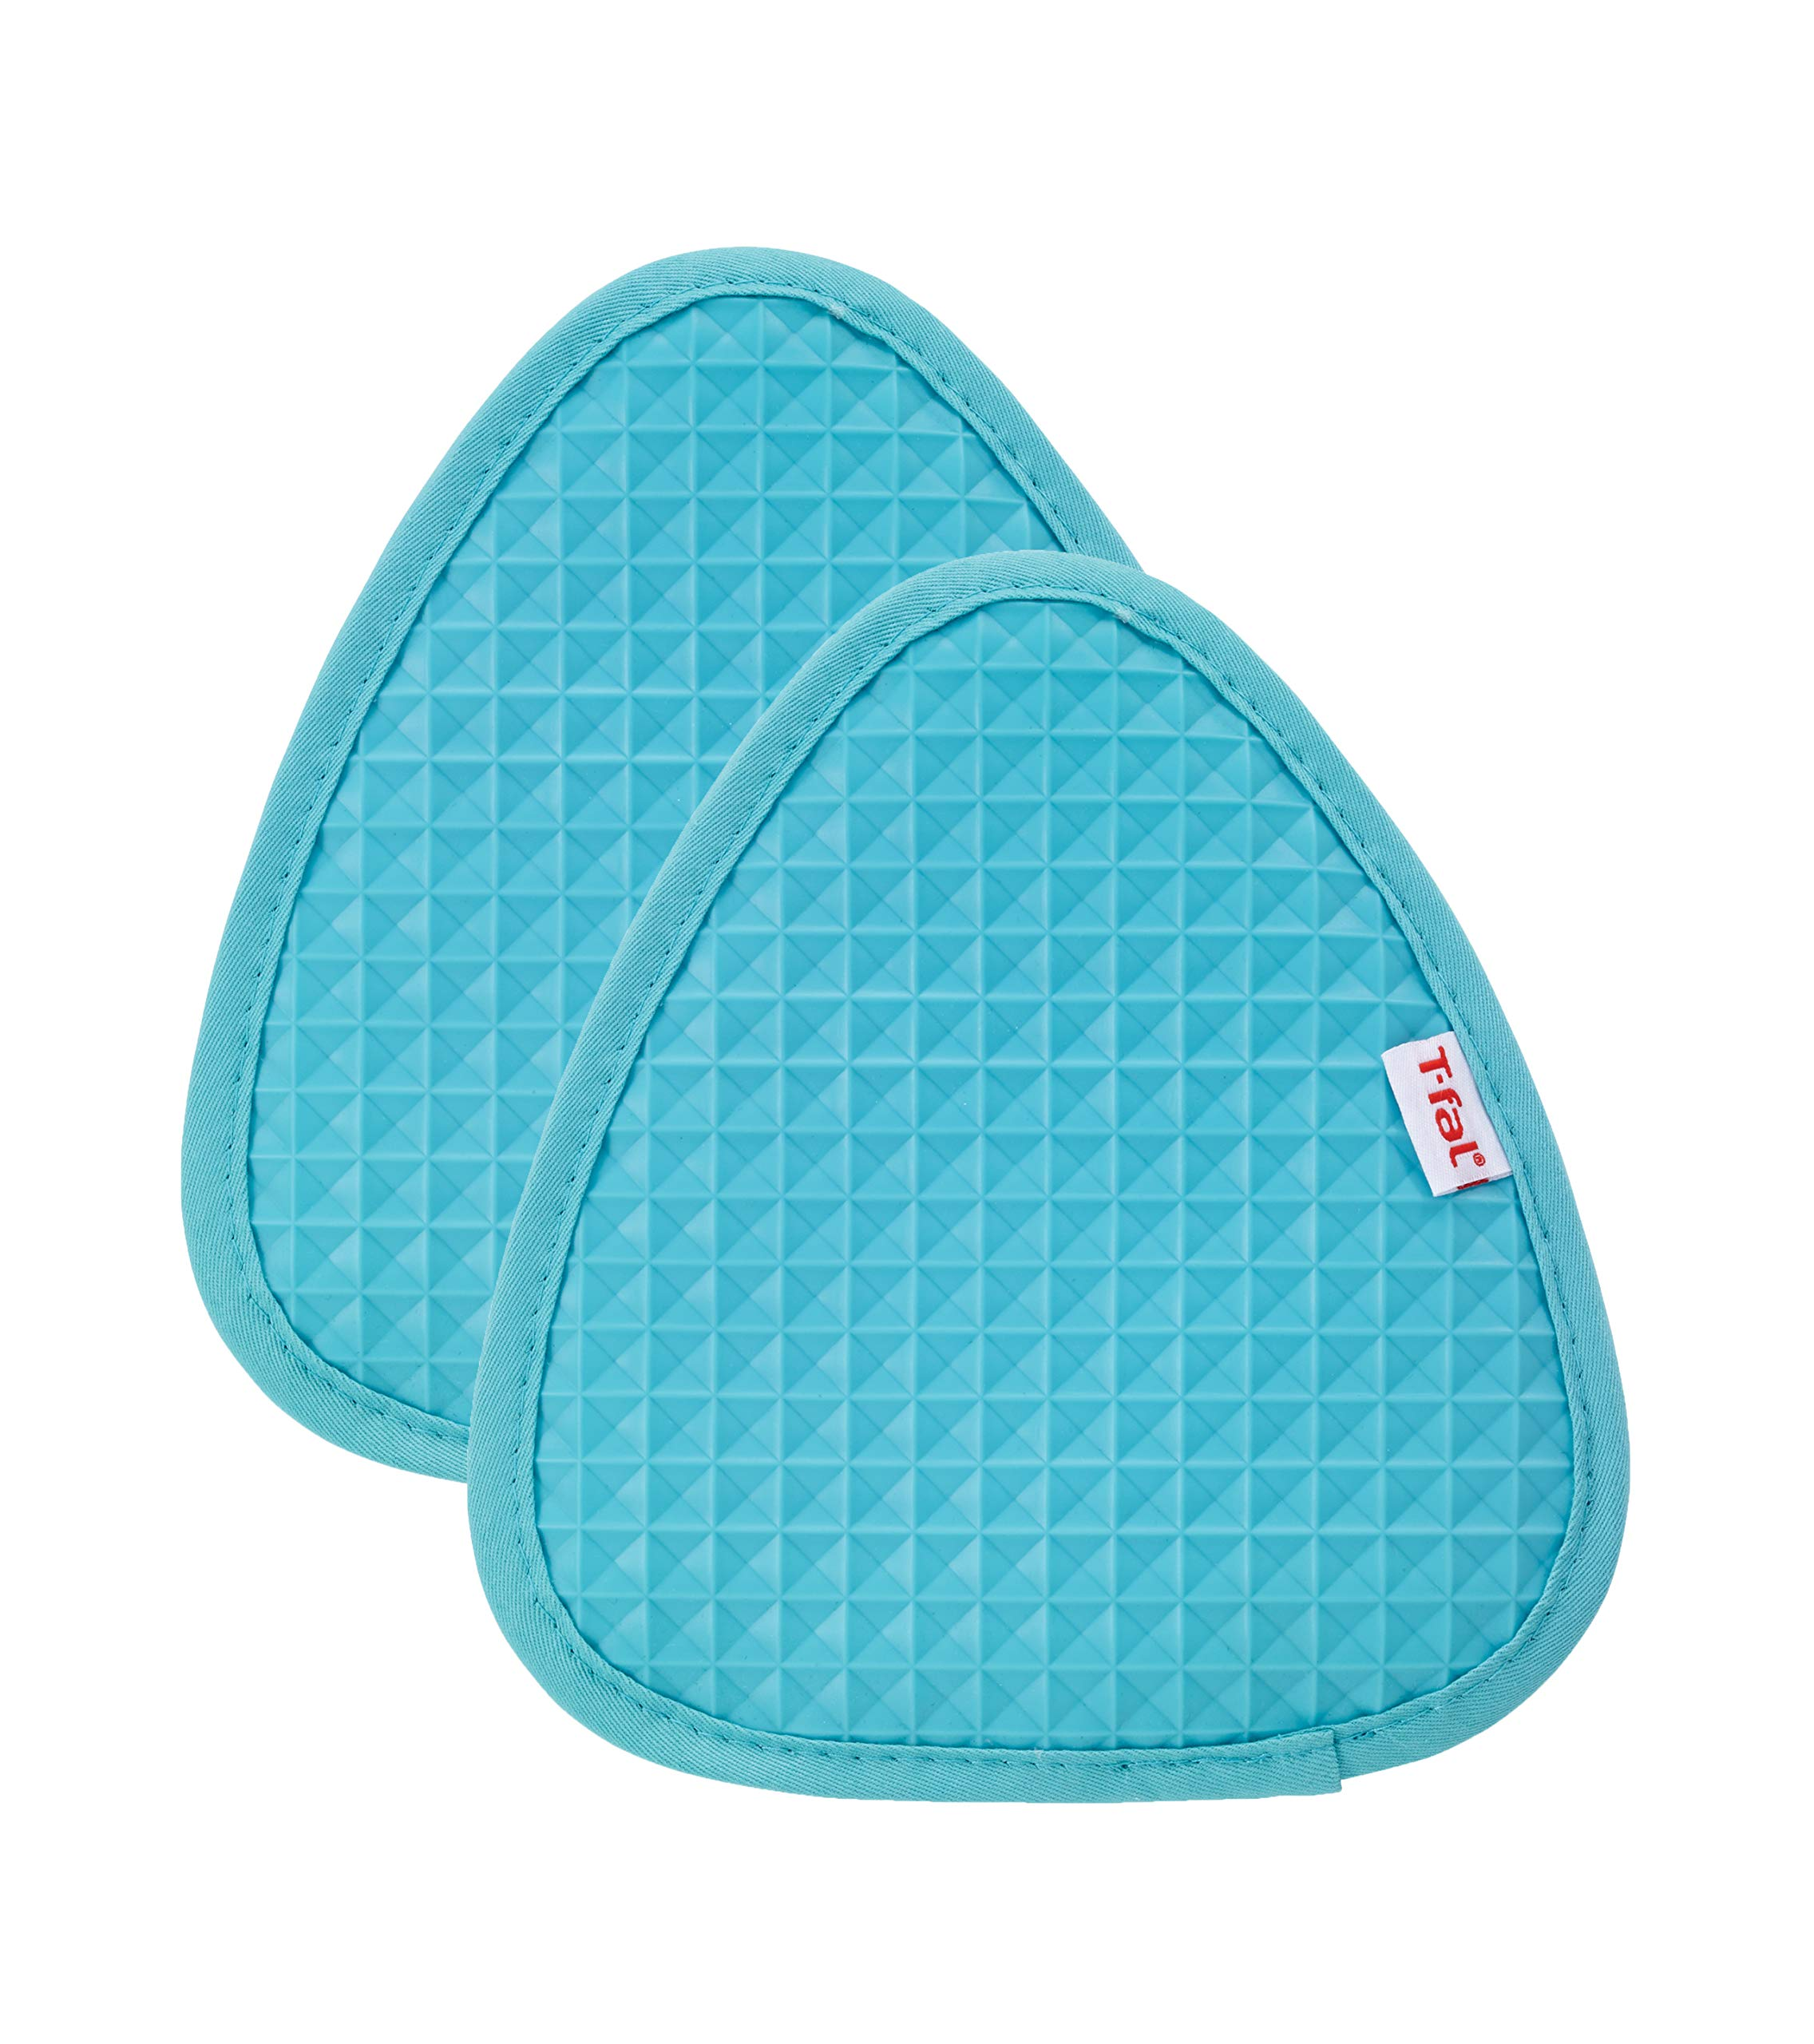 T-fal Textiles 34318 Waffle Softflex Silicone Pot Holder, 2 Pack, Breeze by T-fal Textiles